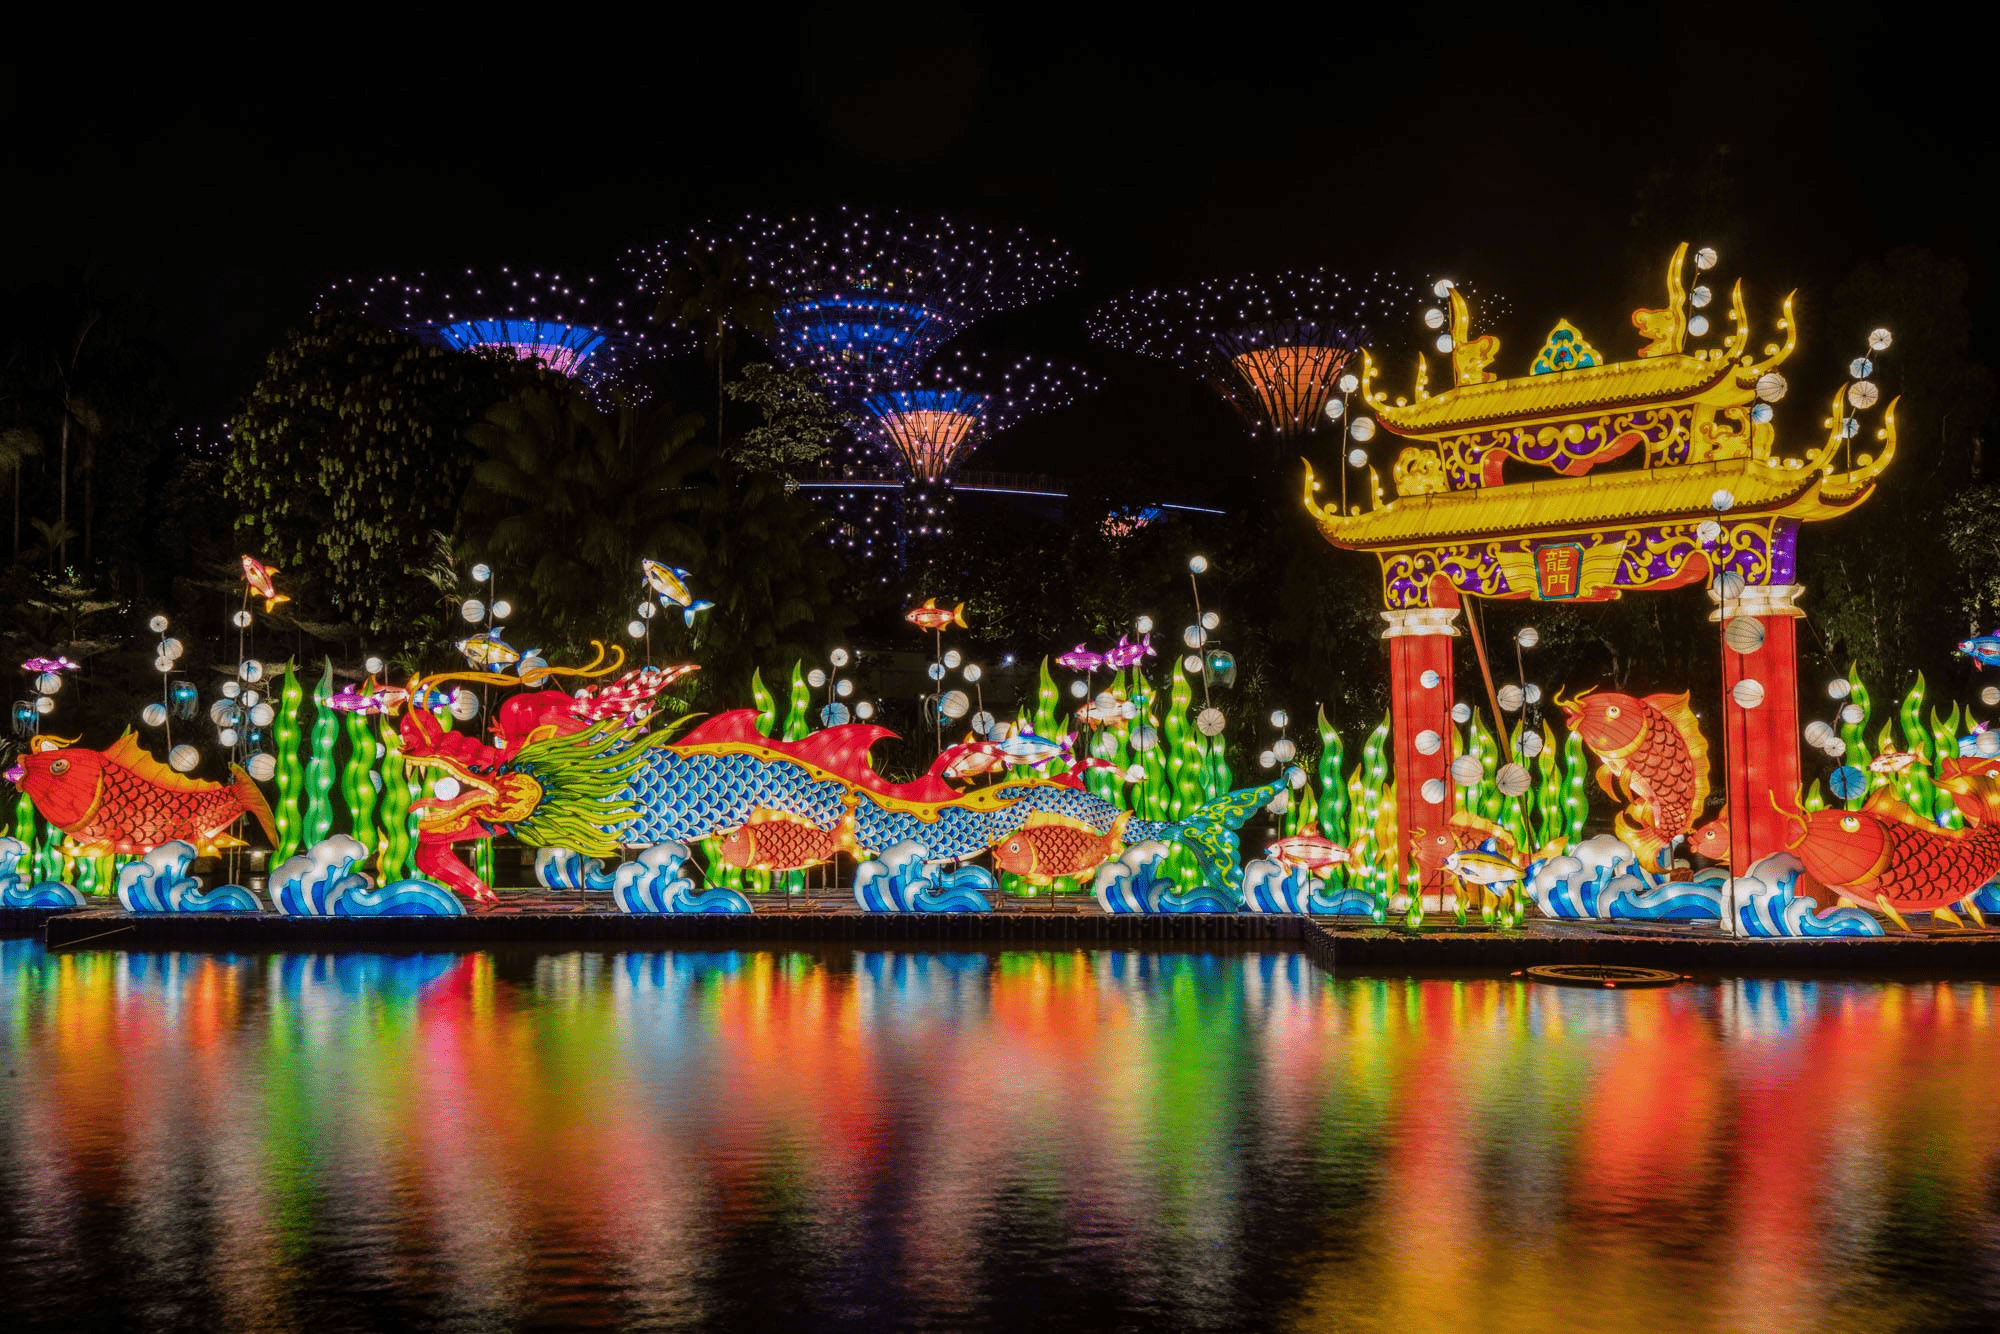 Gardens by the bay 2019 Mid-Autumn Festival